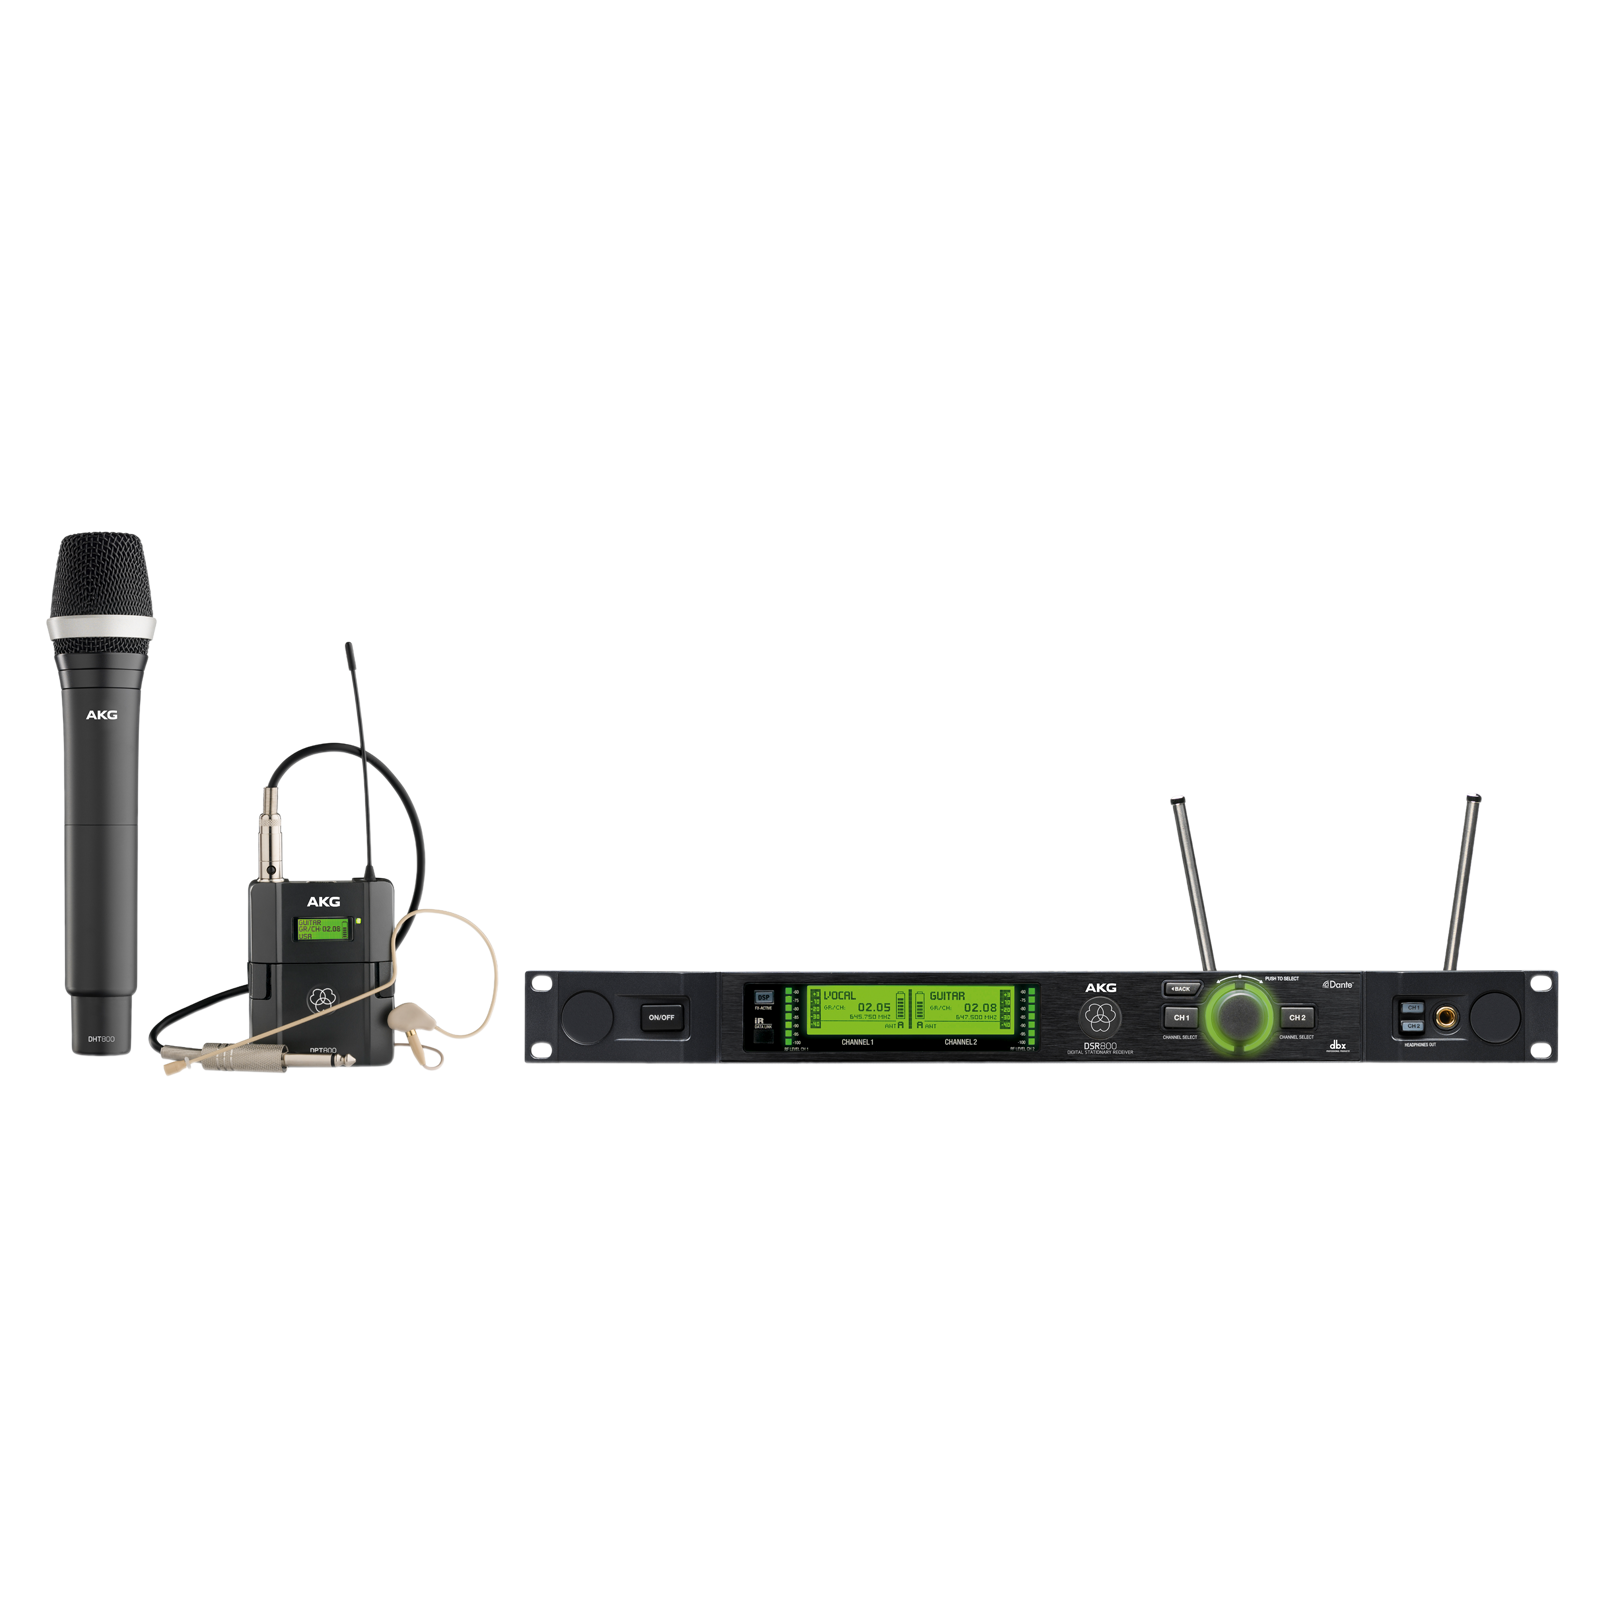 DMS800 Mix Set - Black - Reference digital wireless microphone system - Hero